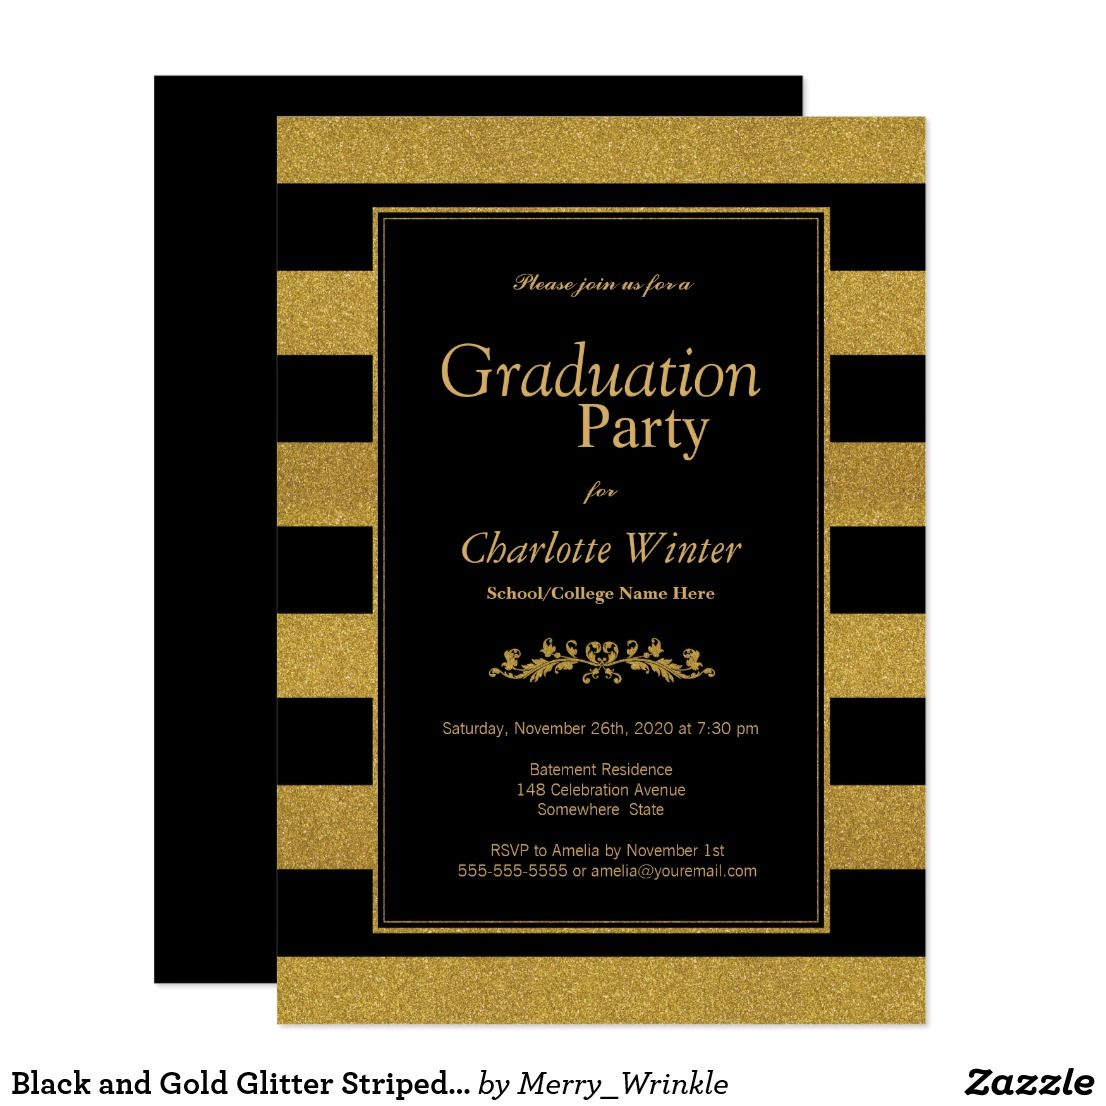 Black And Gold Glitter Striped Graduation Party Invitation